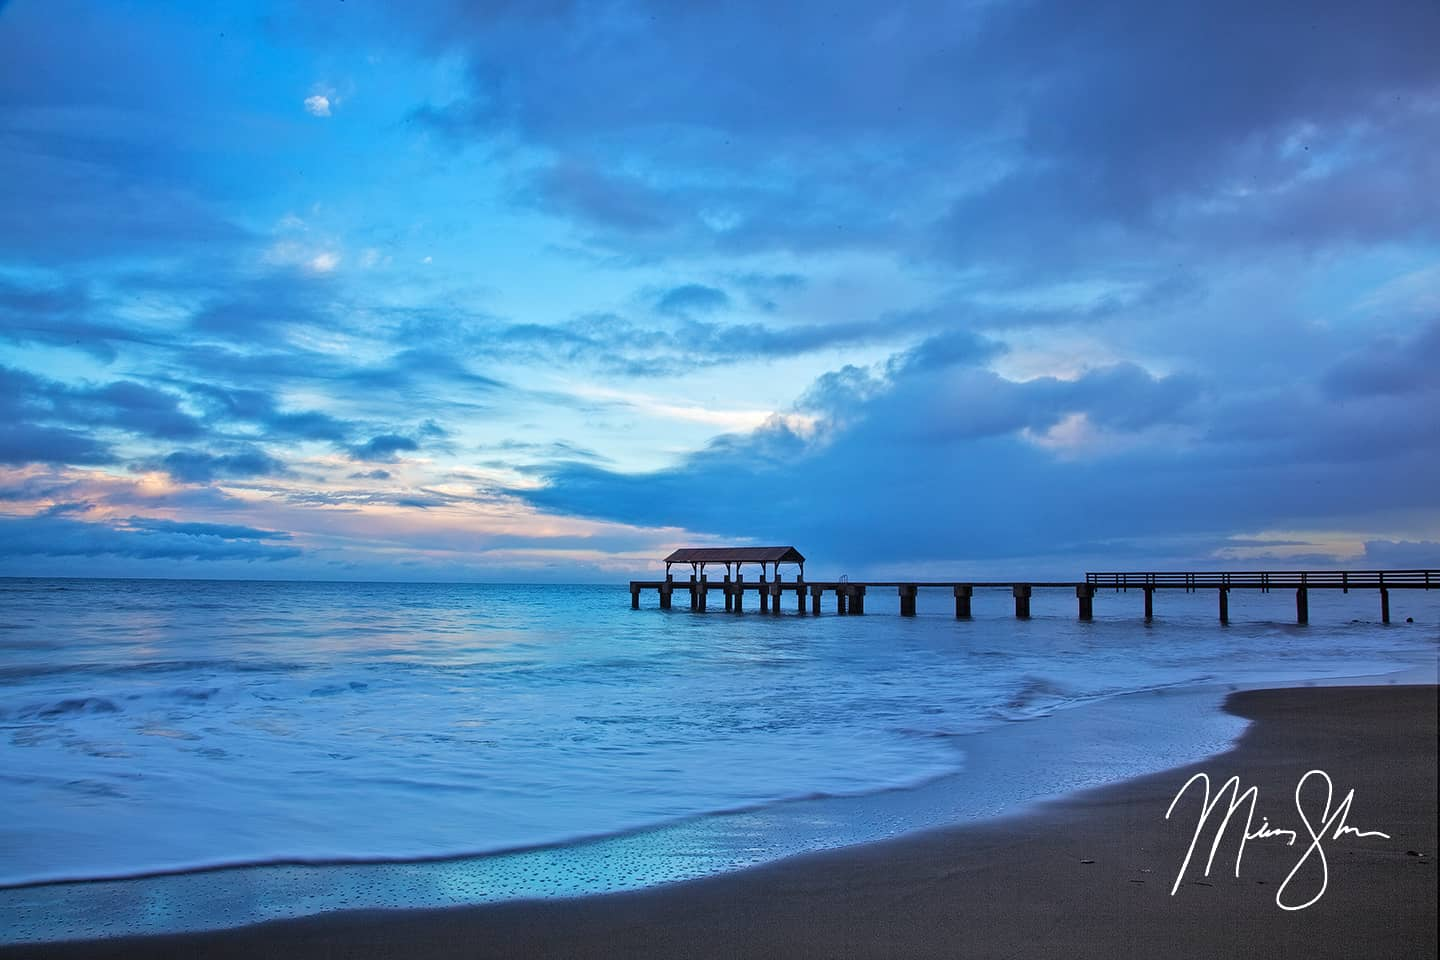 Blue Hour at Waimea Bay Pier